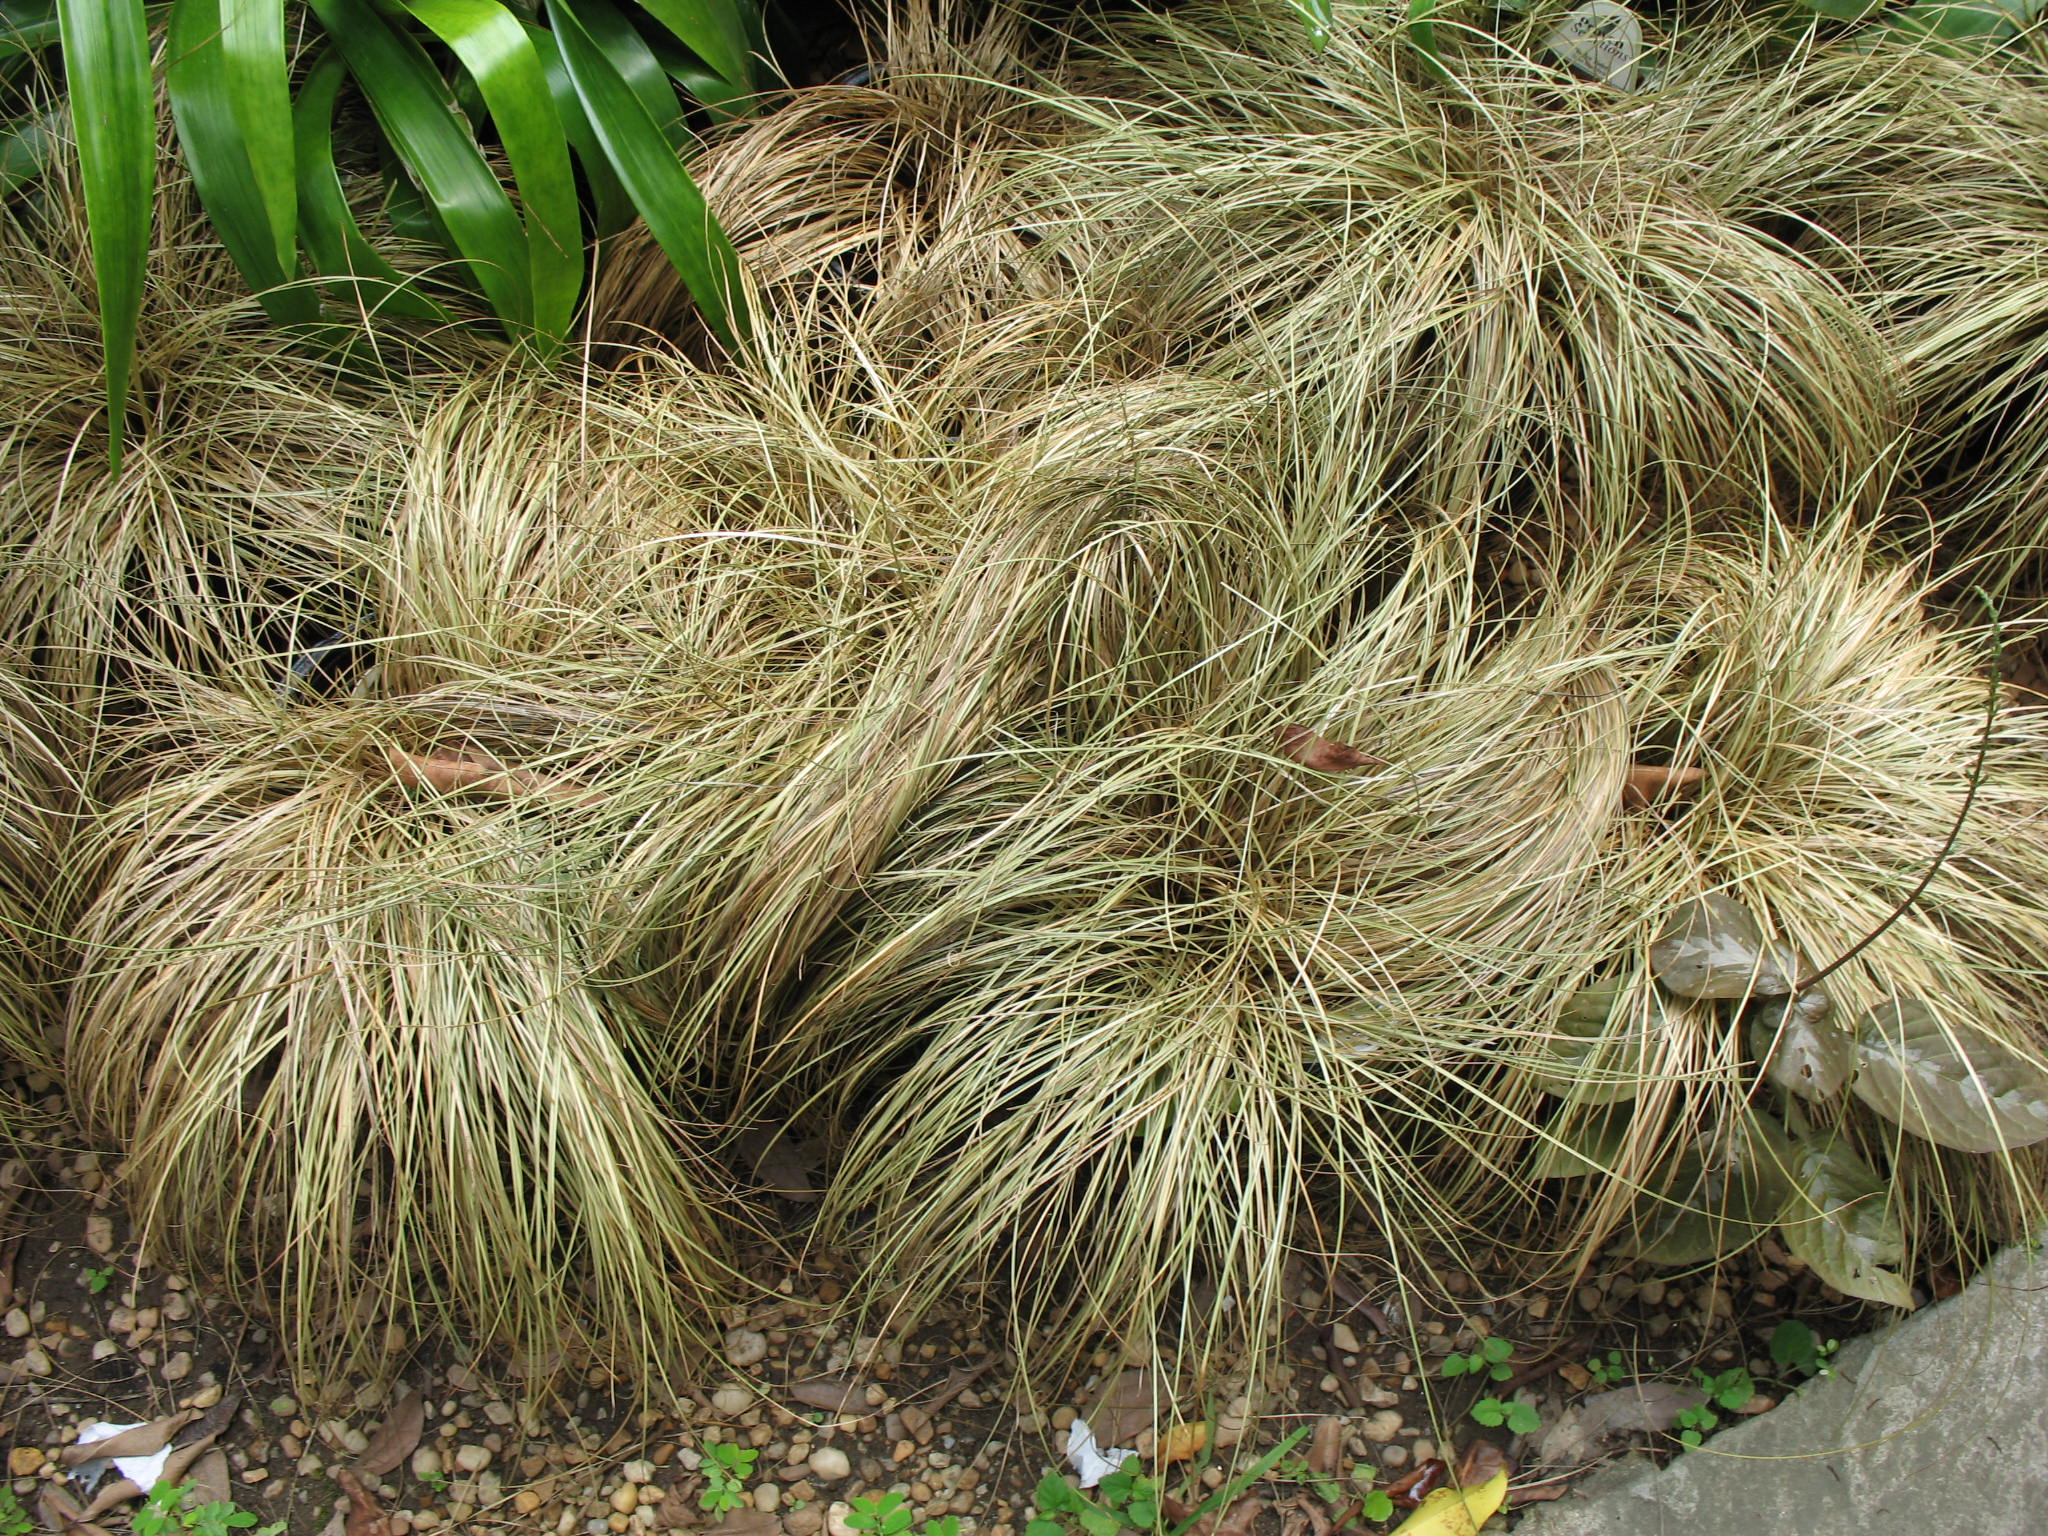 Carex flagellifera 'Toffee Twist'   / Carex flagellifera 'Toffee Twist'